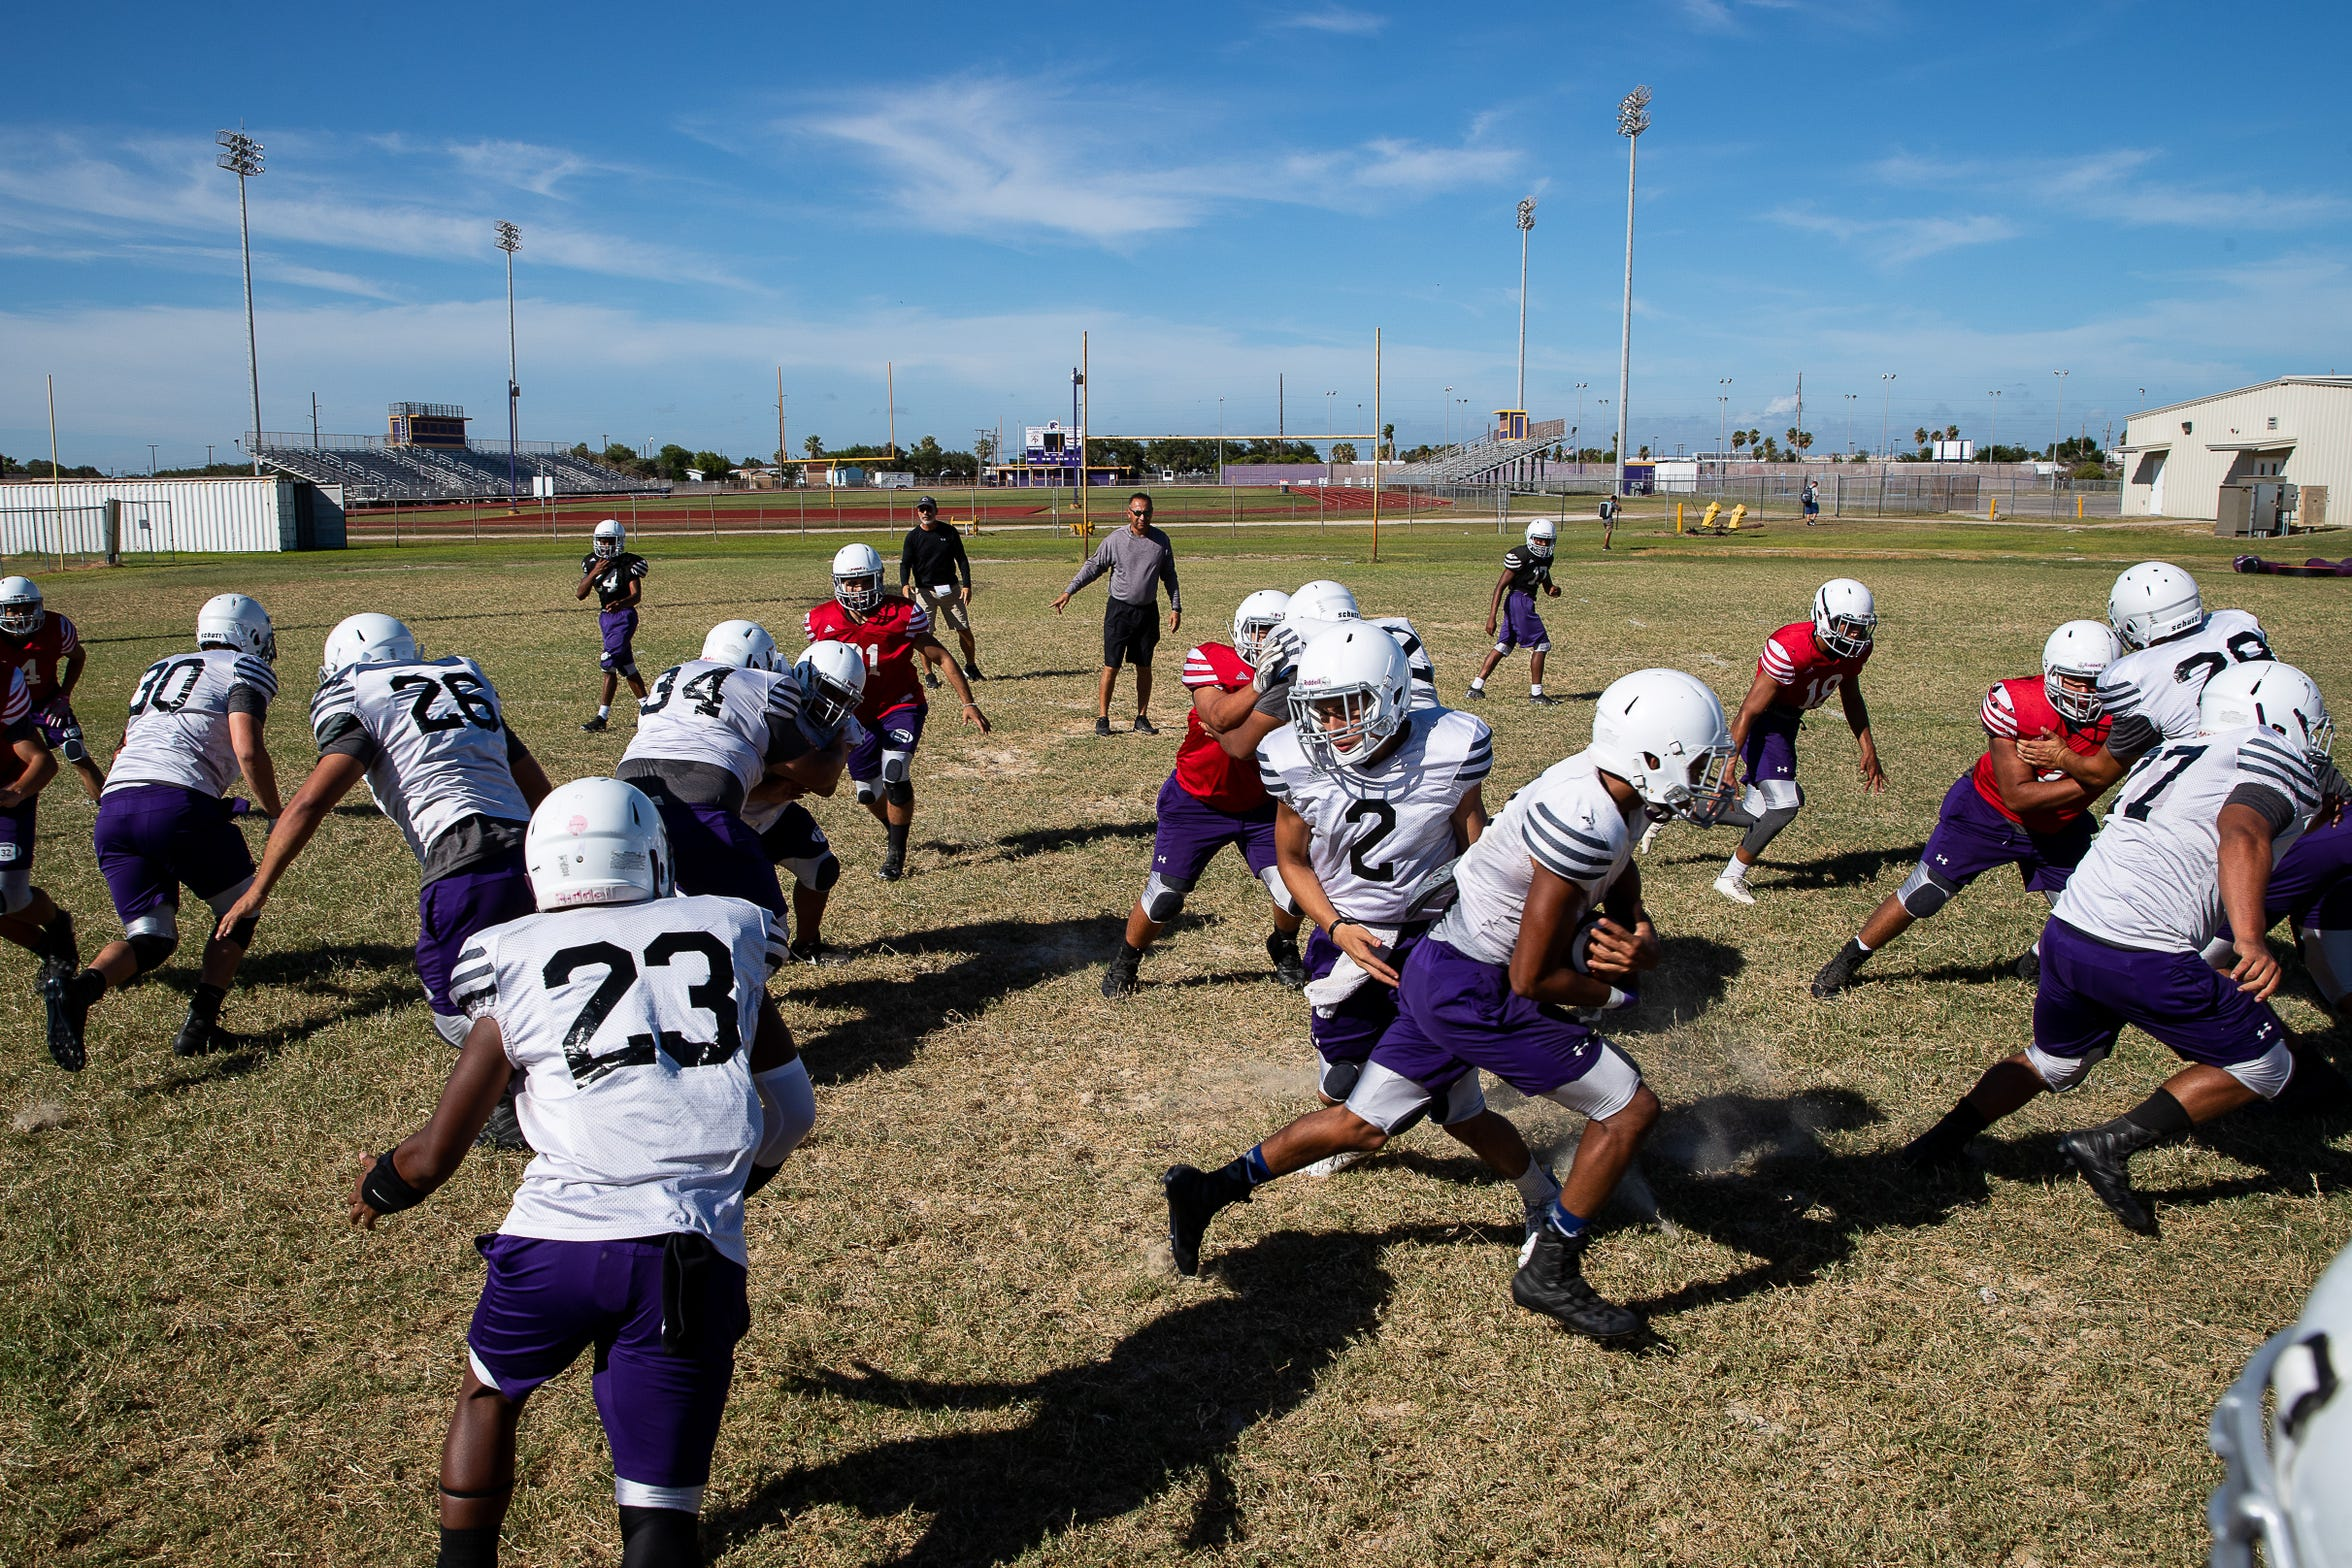 Aransas Pass runs plays during practice on Tuesday, Aug. 28, 2018 ahead of Fridays game against Rockport-Fulton. In 2017 Aransas Pass and Rockport-Fulton's game was canceled do to Hurricane Harvey.